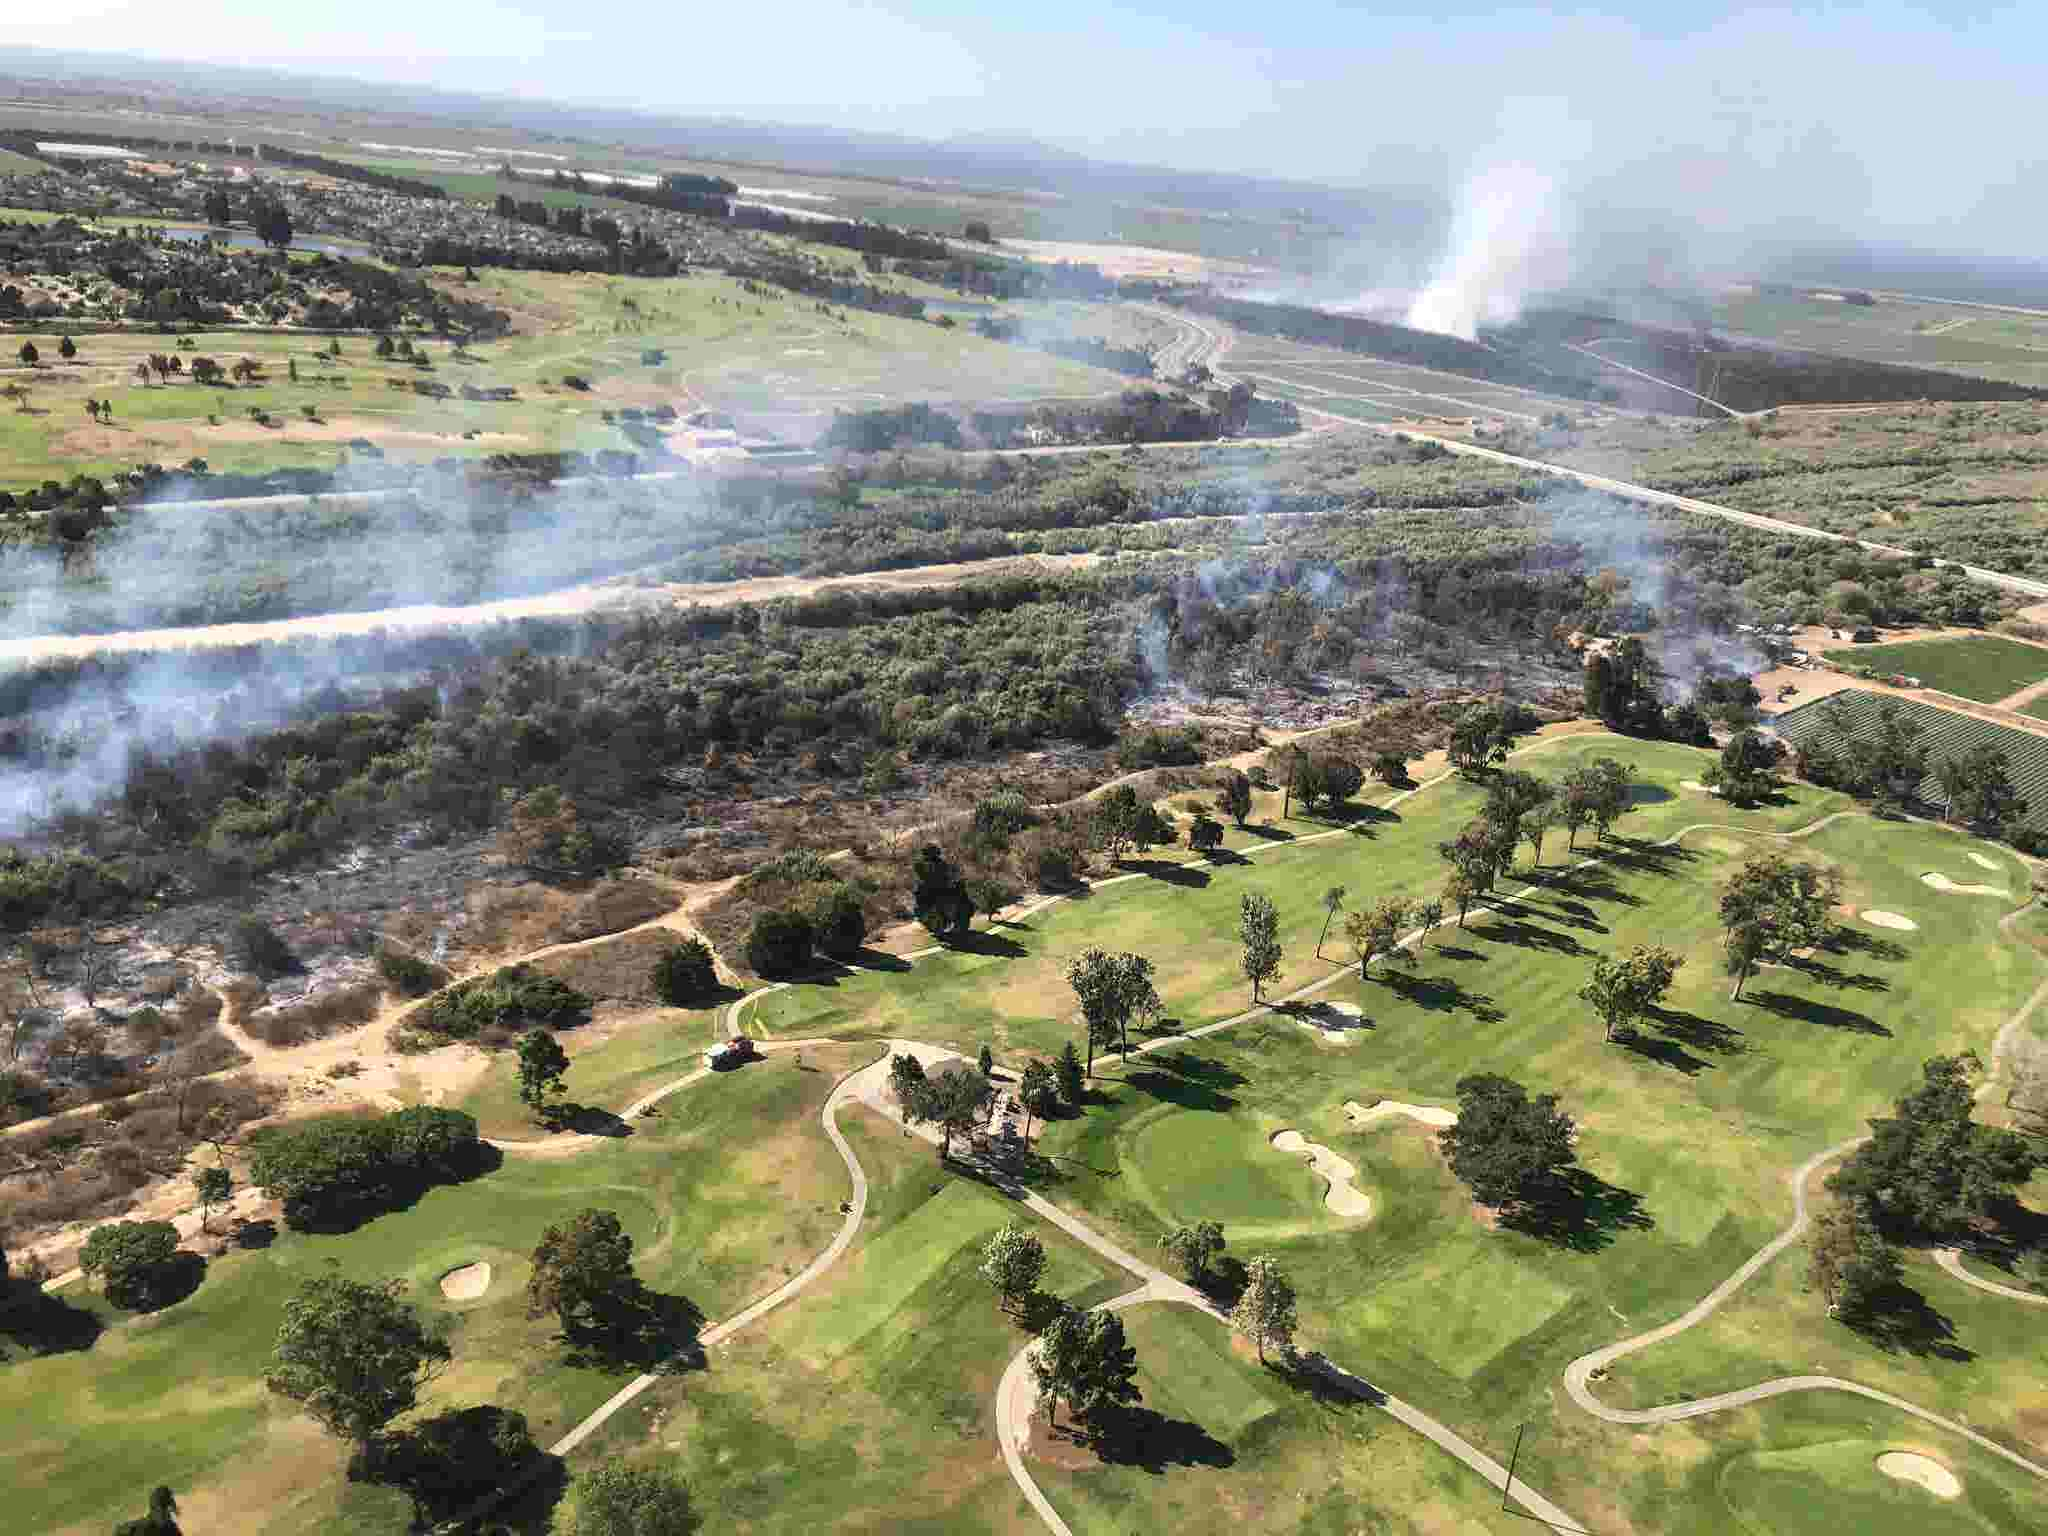 Fire problems are felt from one end of Ventura County to the other